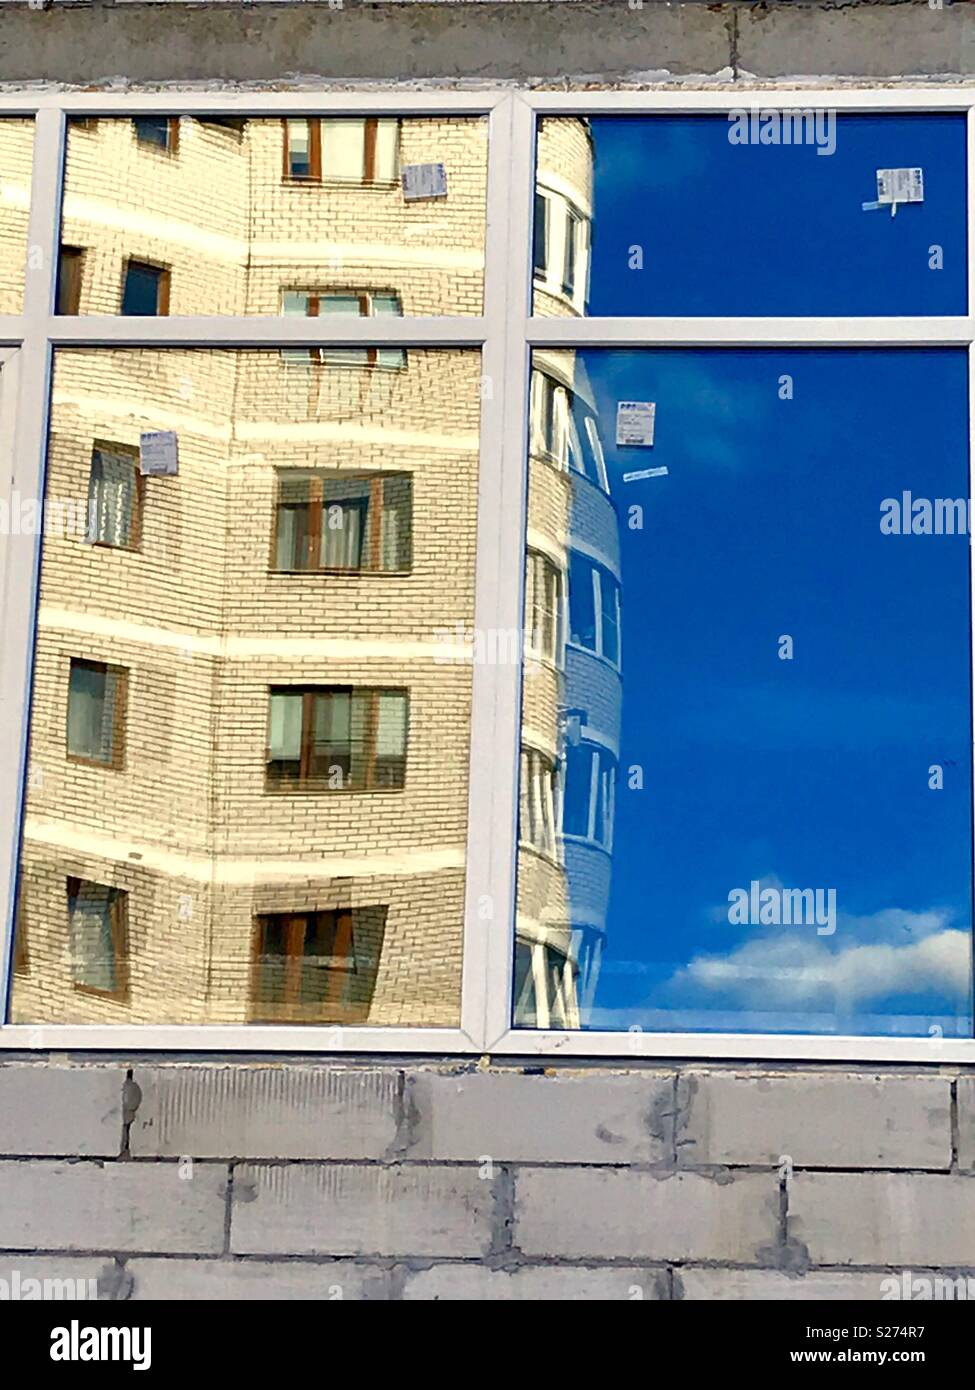 distortion in reflection - Stock Image